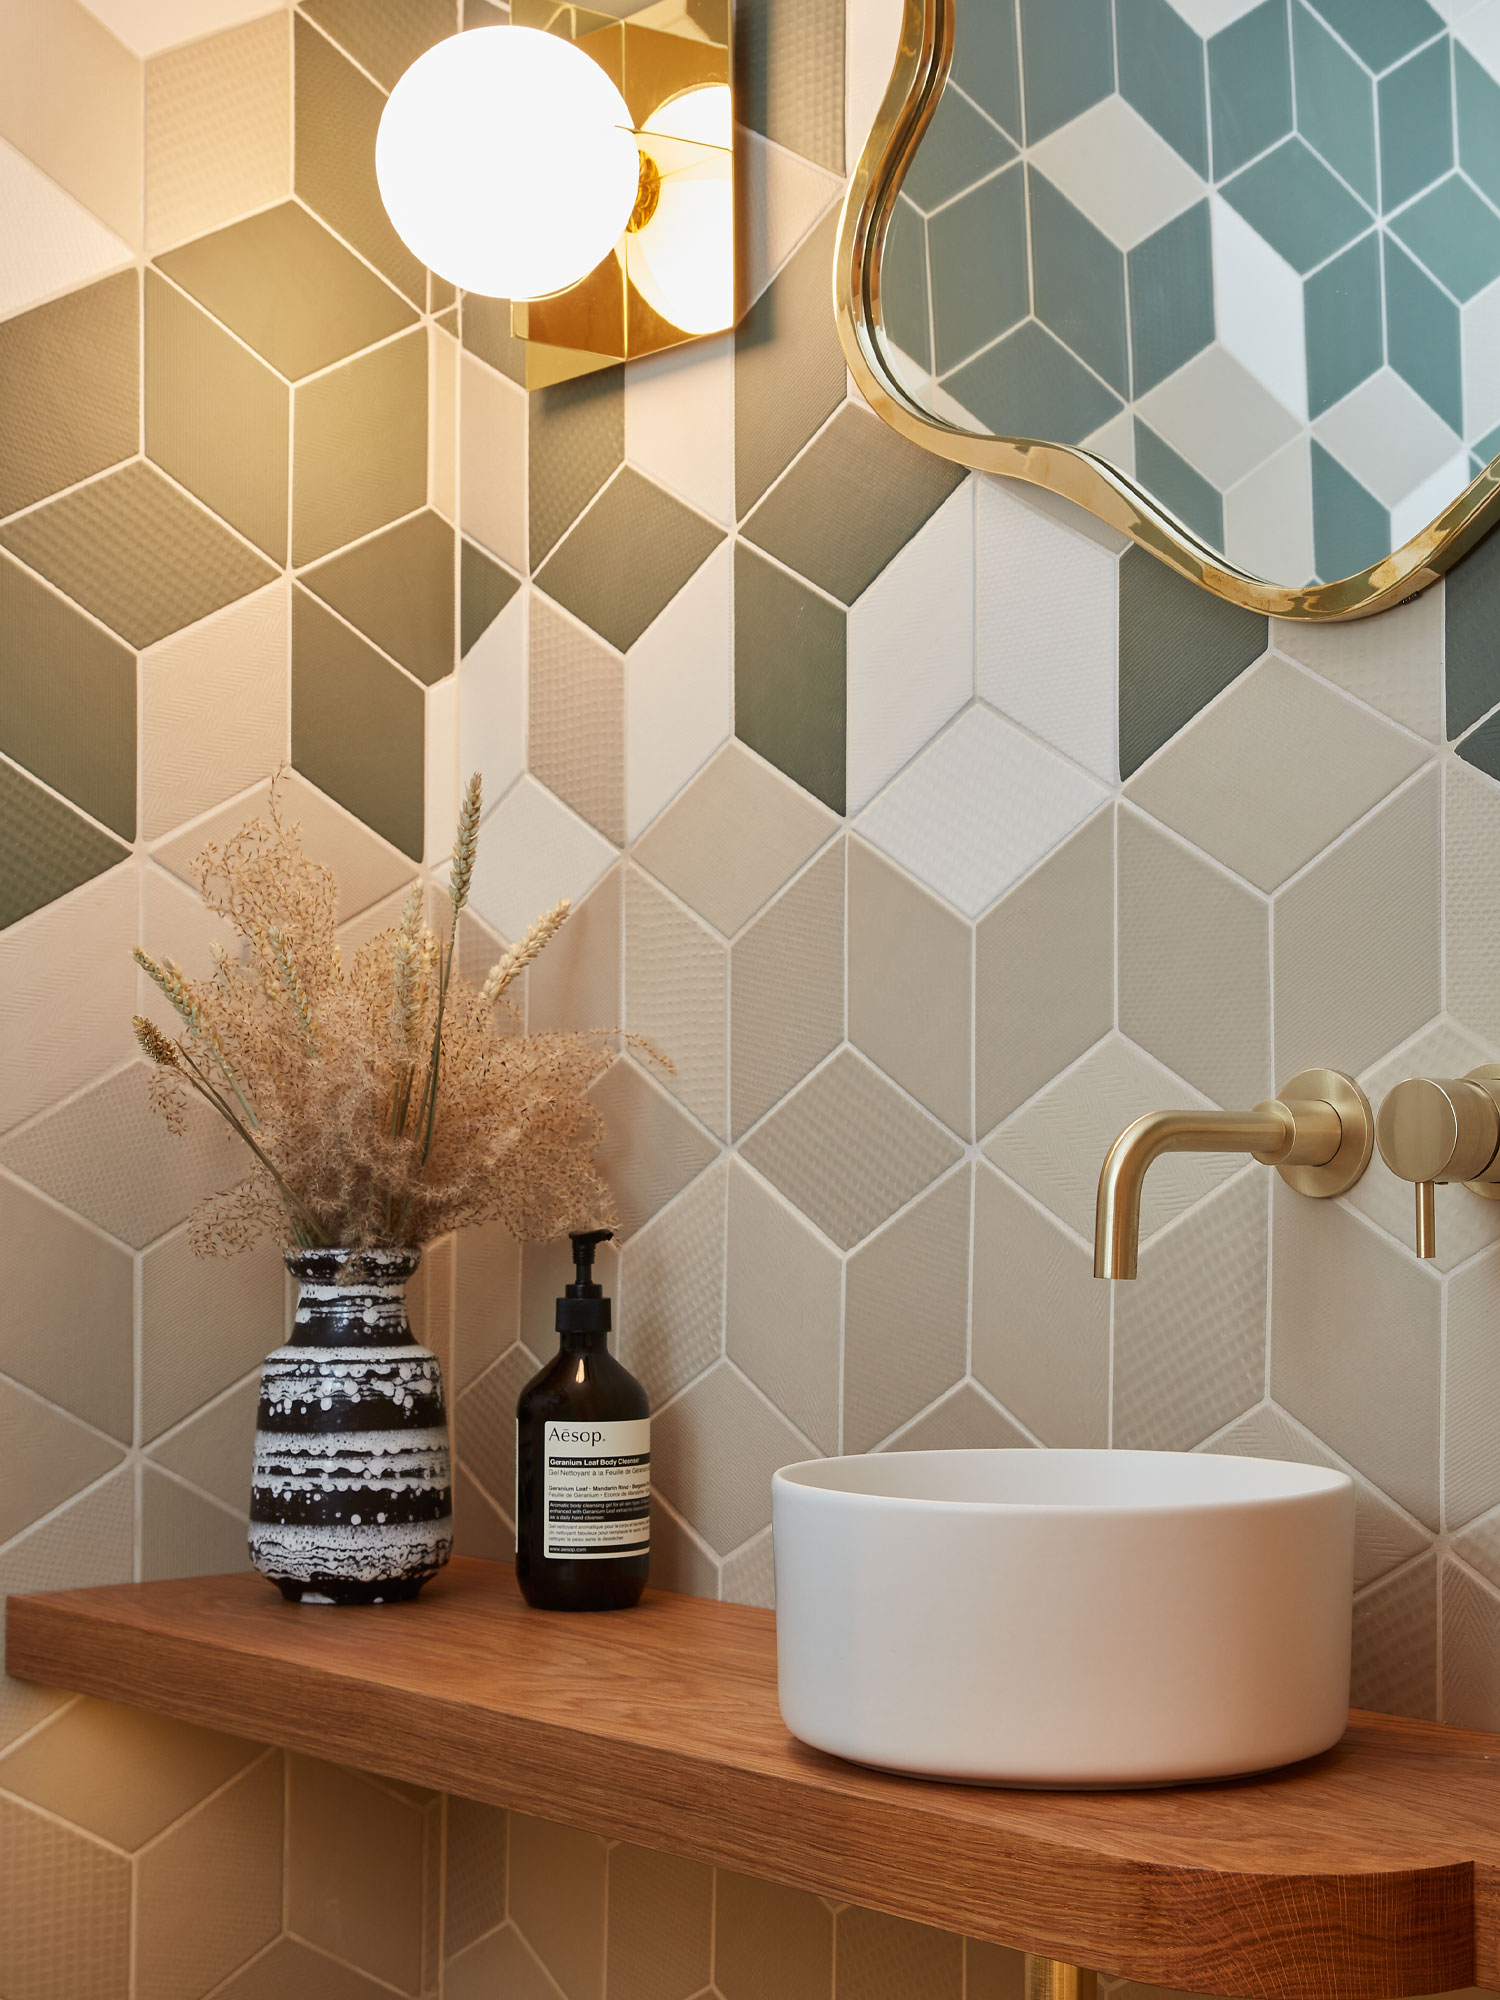 West One Bathrooms Inspiration Turning a Spare Room into a Large Bathroom image3a